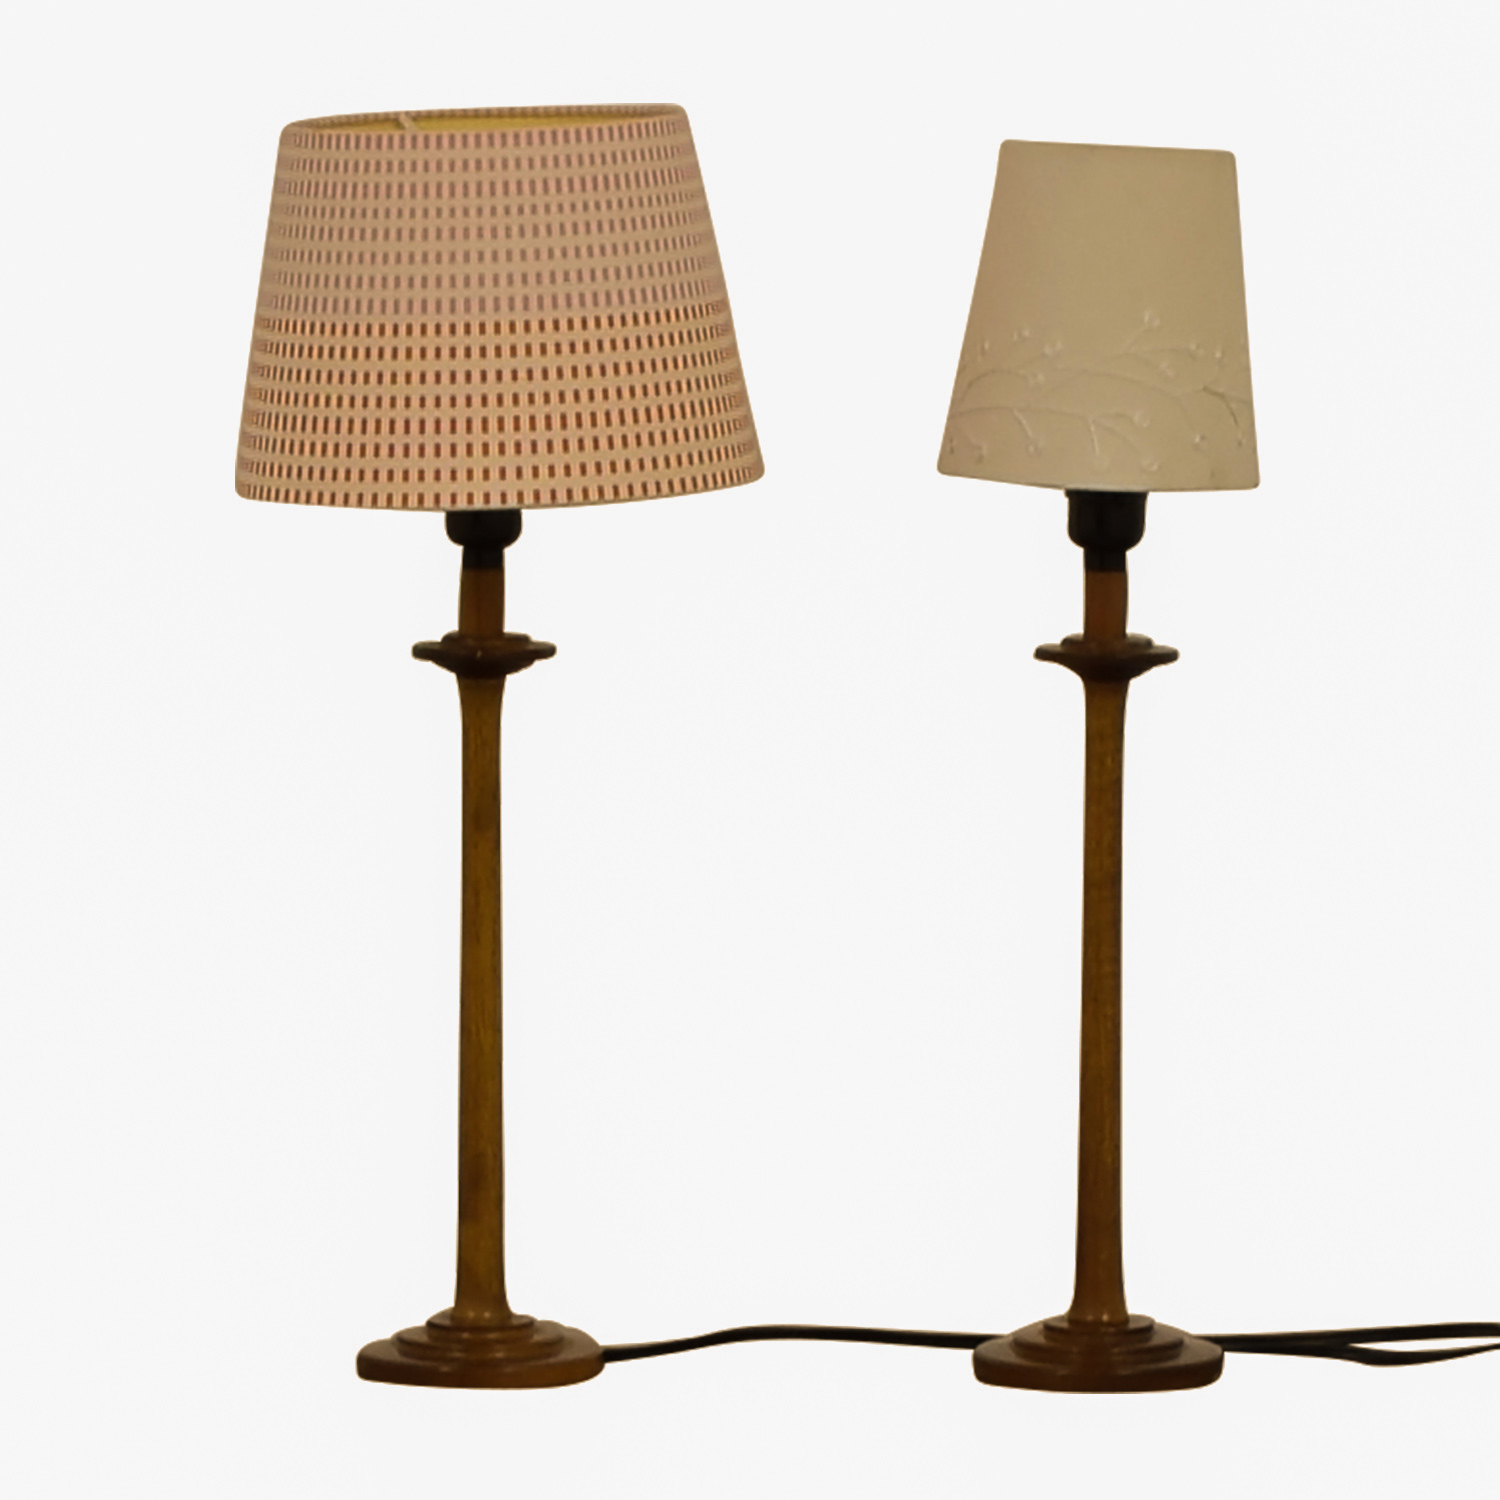 86 Off Wood Table Lamps With Mismatched Shades Decor